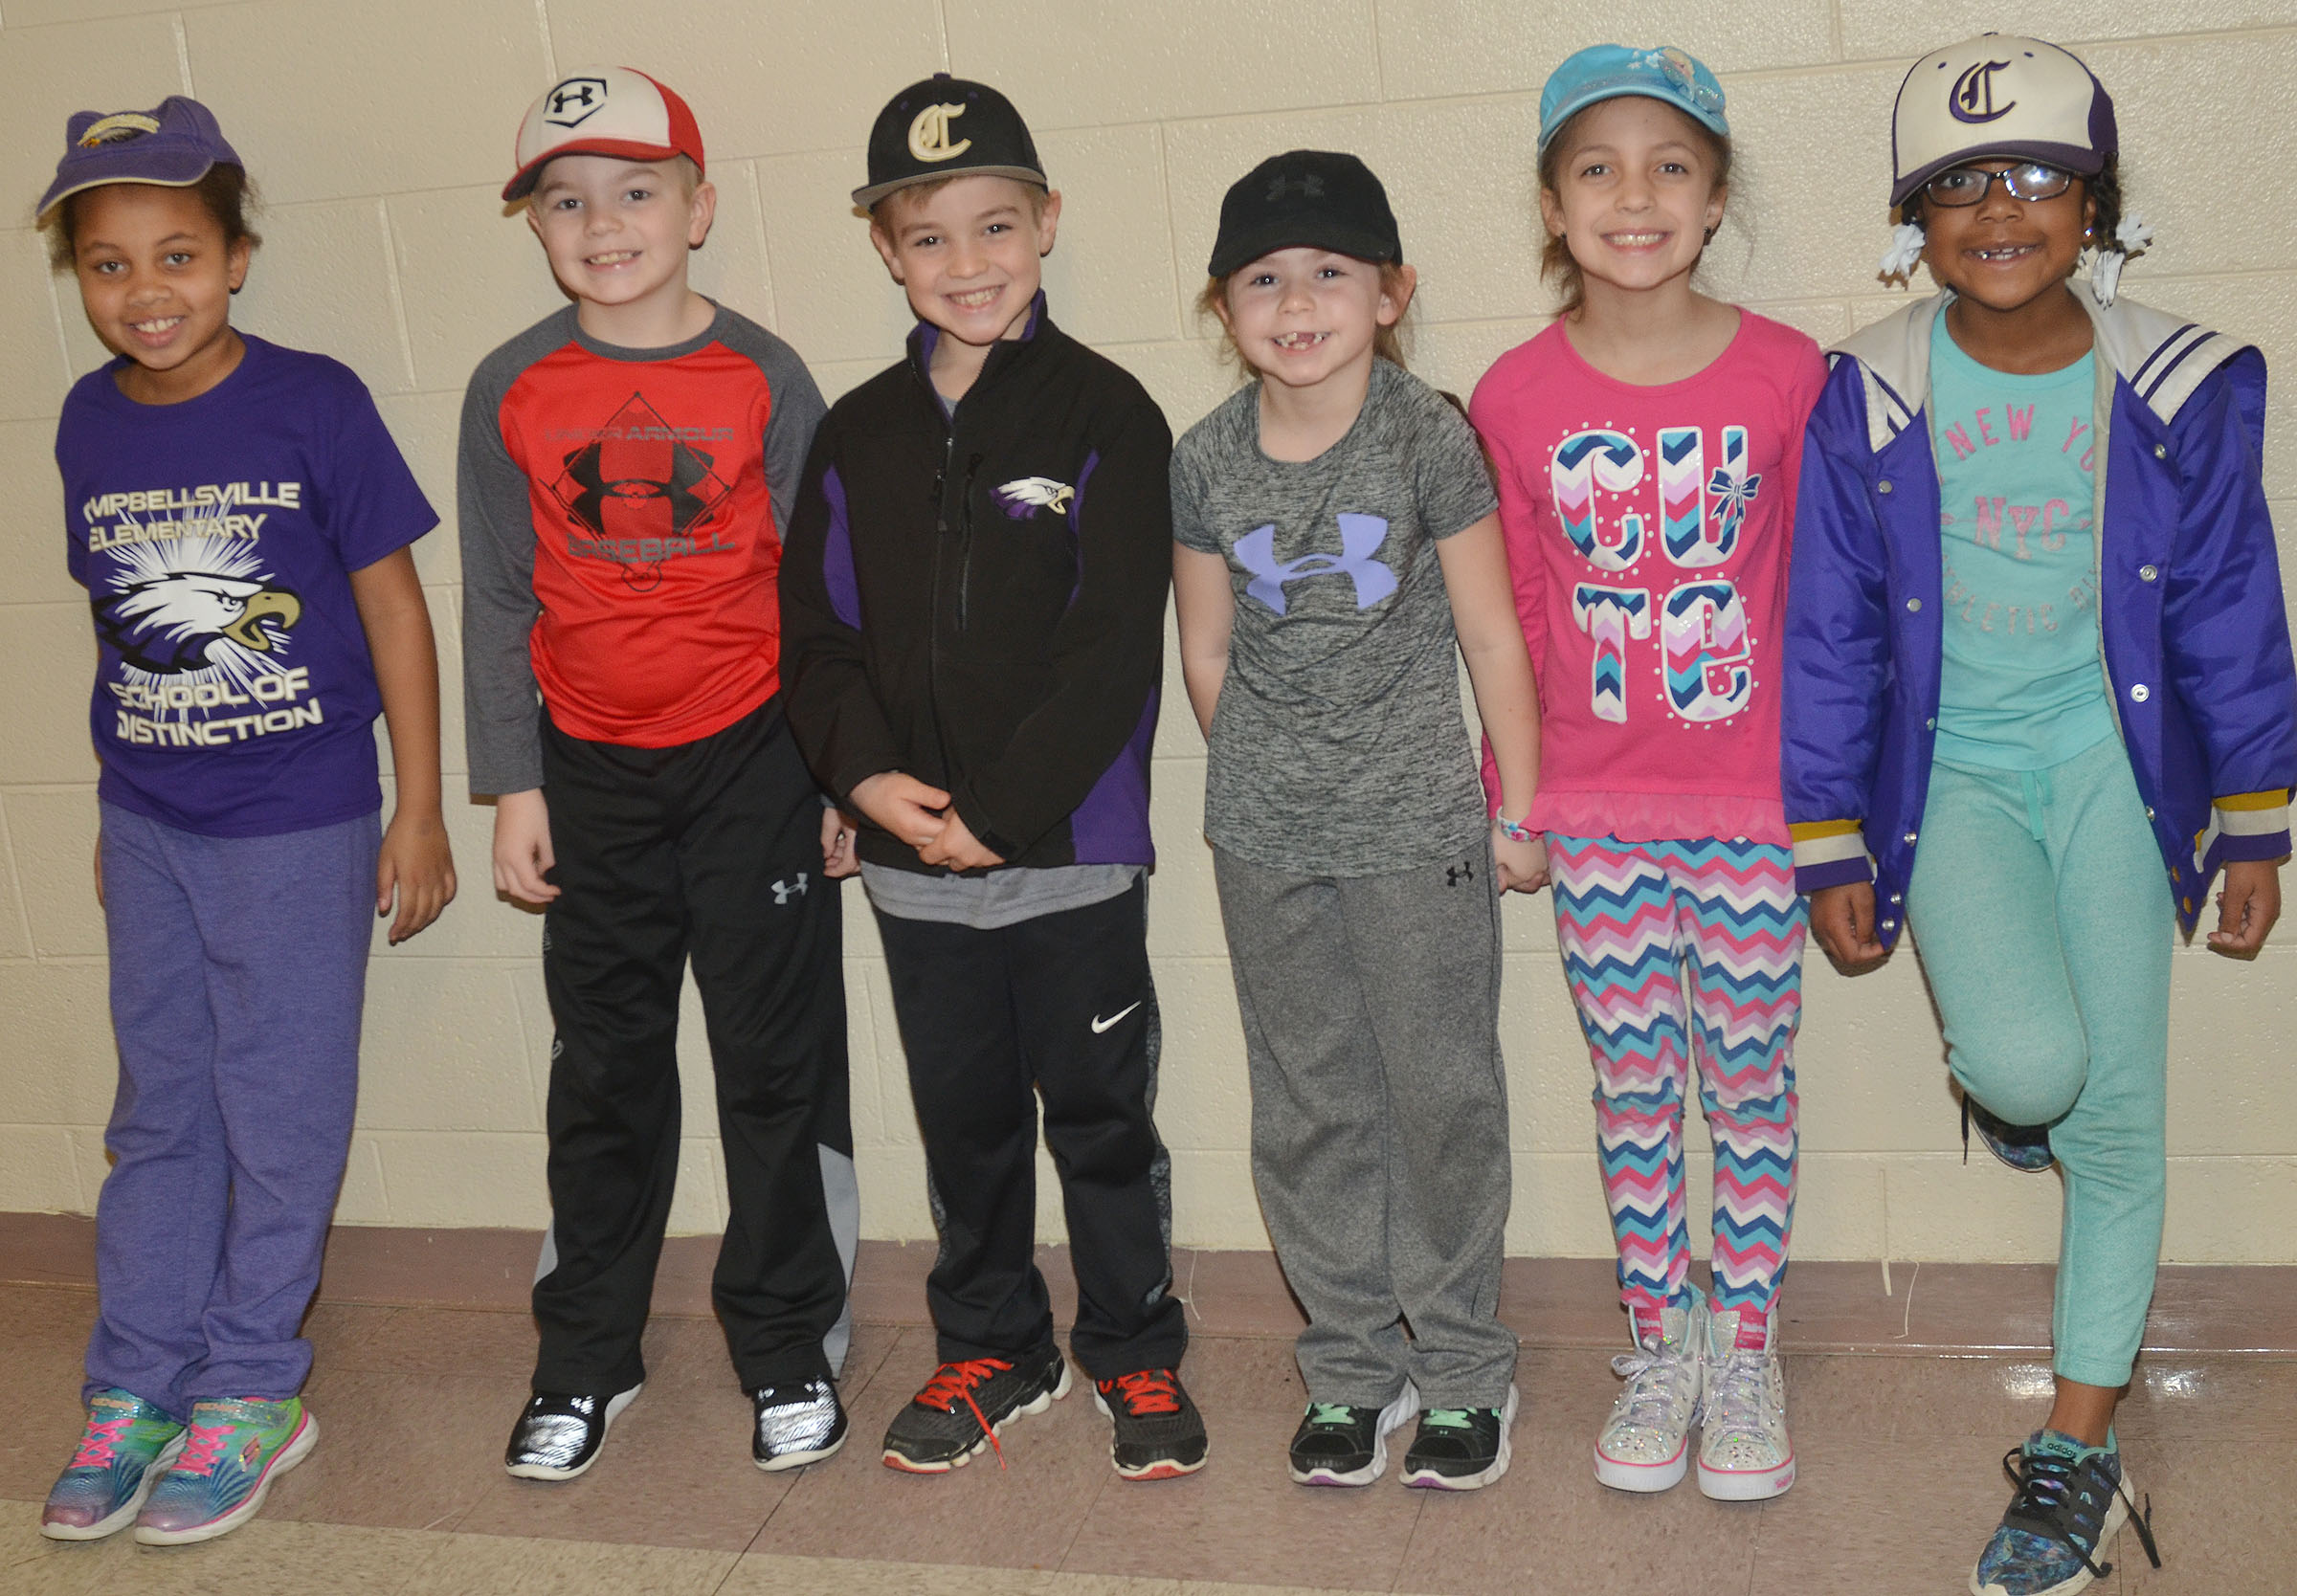 CES first-grade students in Hailey Ogle's class wear hats to raise money for Crusade for Children.